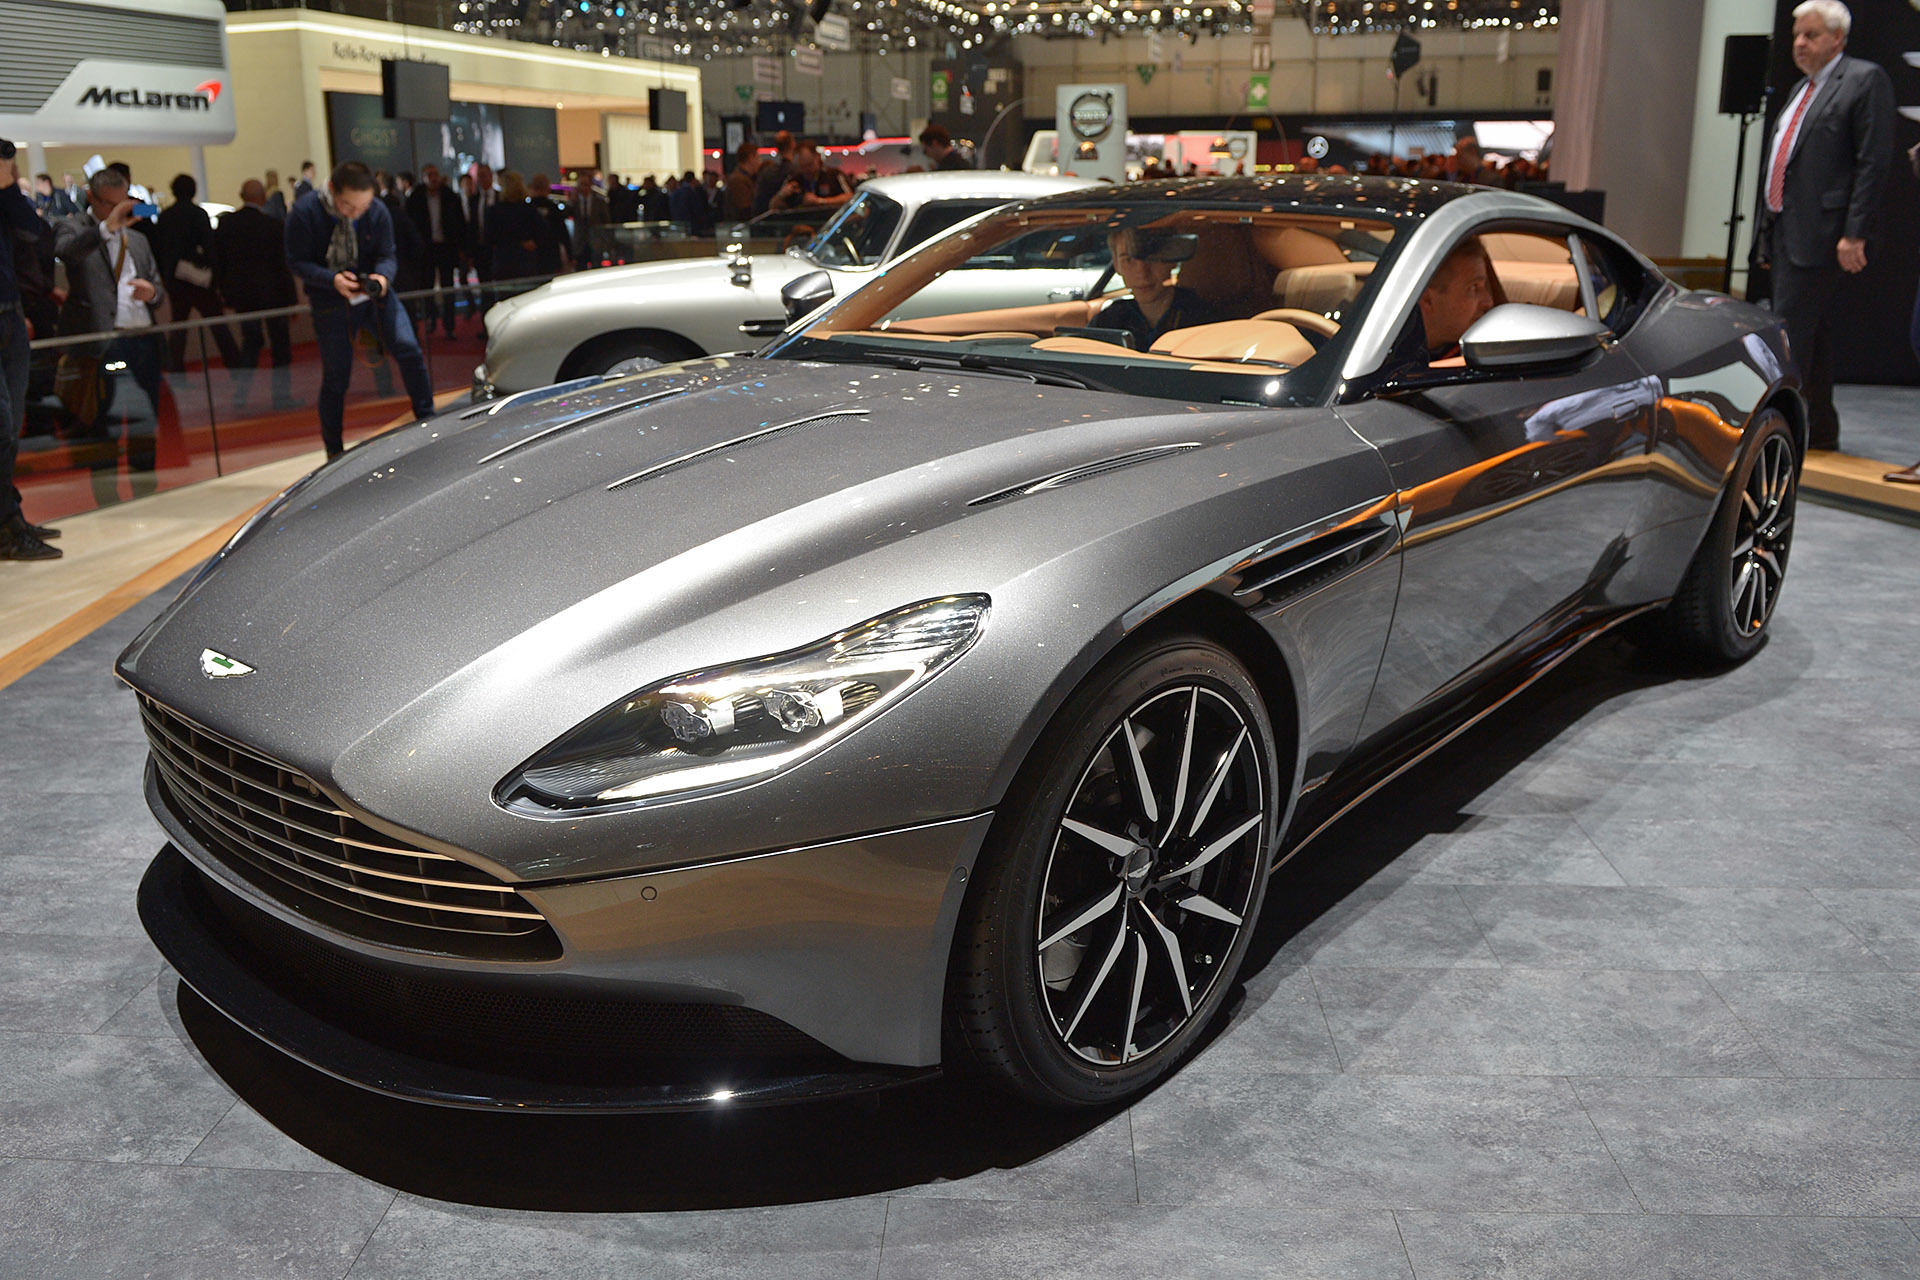 aston martin db11 2016 dark cars wallpapers. Black Bedroom Furniture Sets. Home Design Ideas